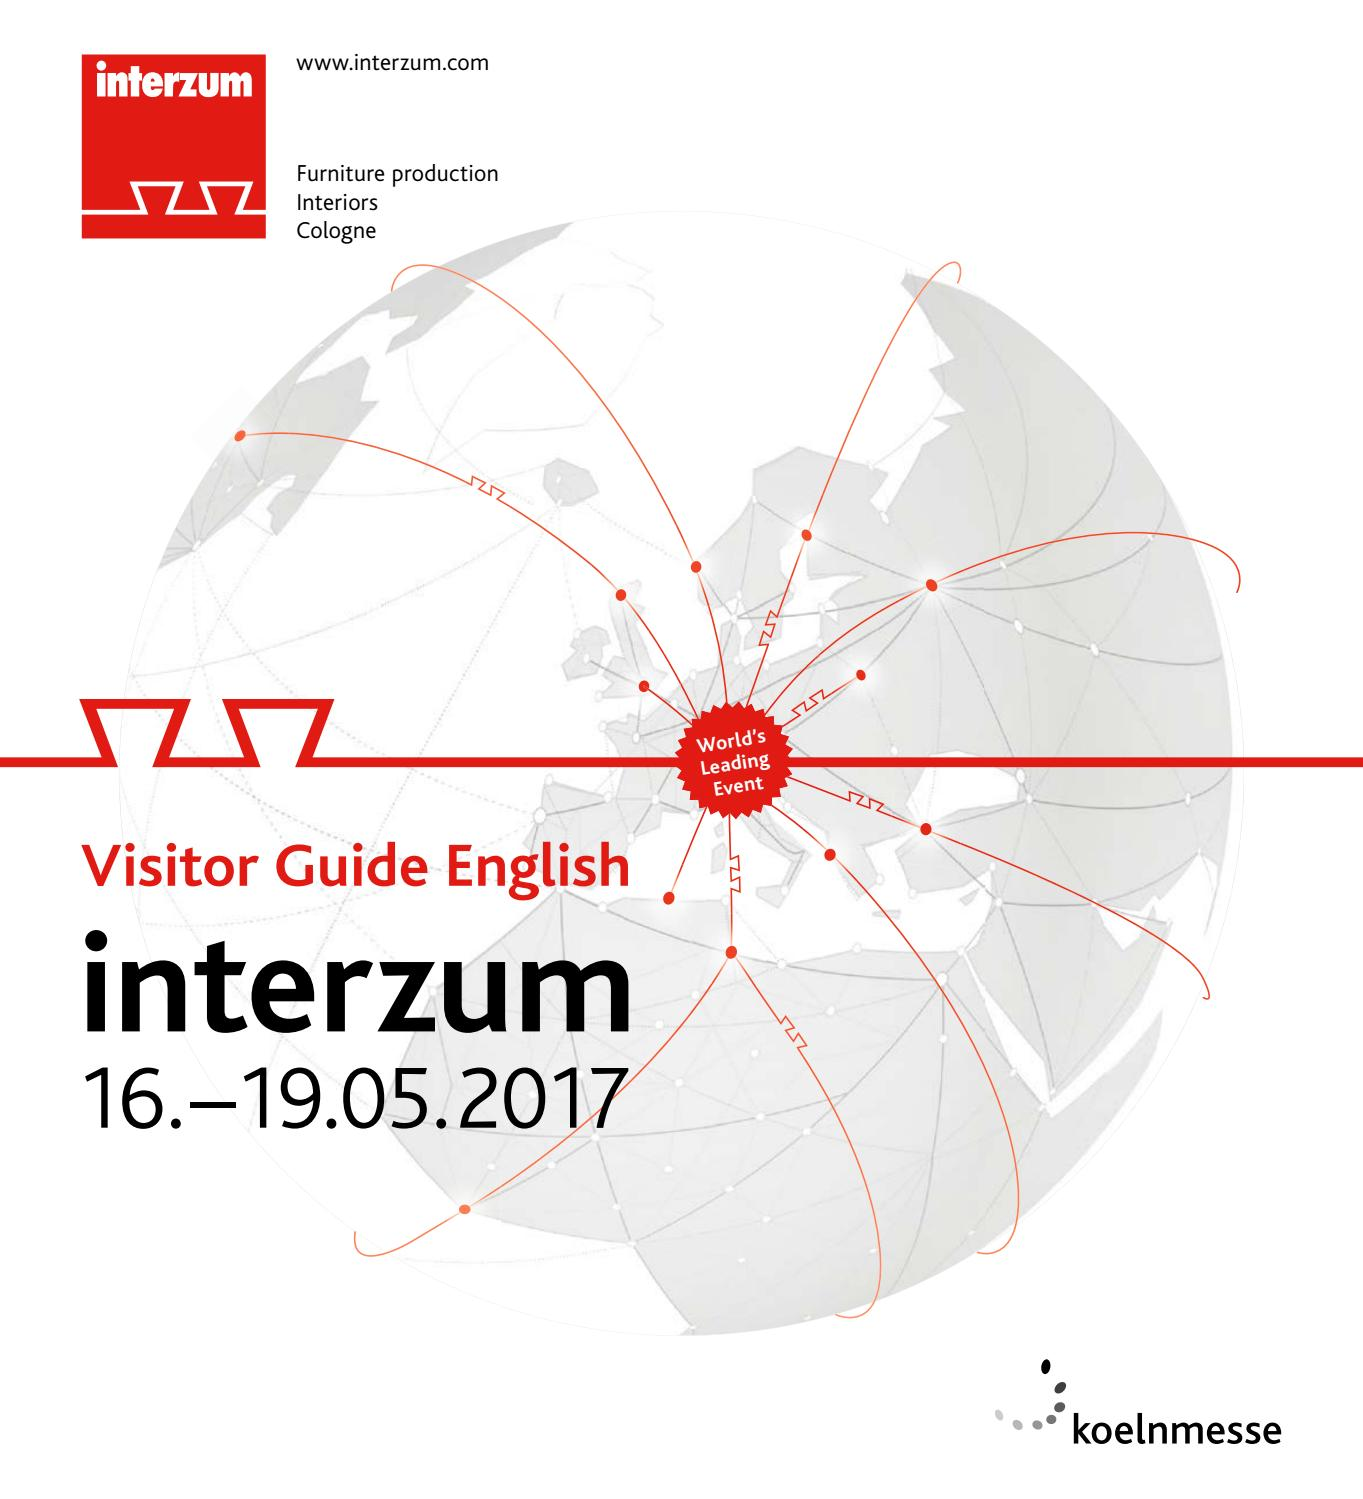 interzum 2017 Visitor Guide GB by Koelnmesse GmbH - issuu on